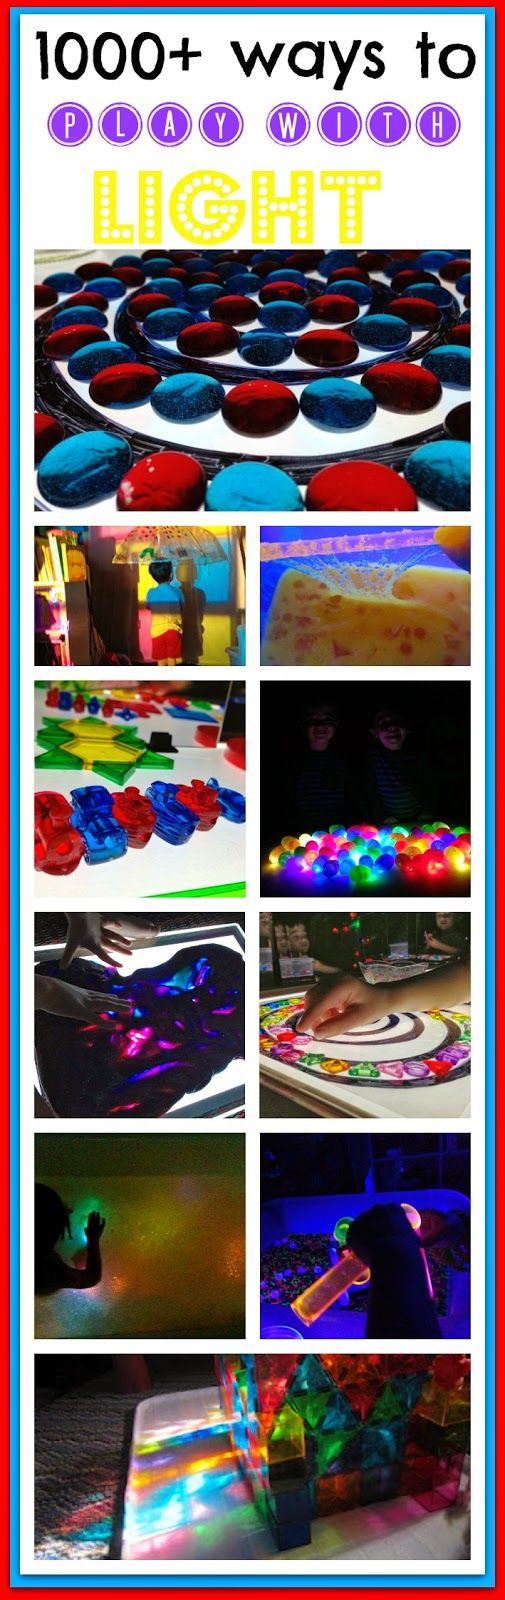 1000+ ways to play with LIGHT!   ~*~!light table, overhead projector, black…